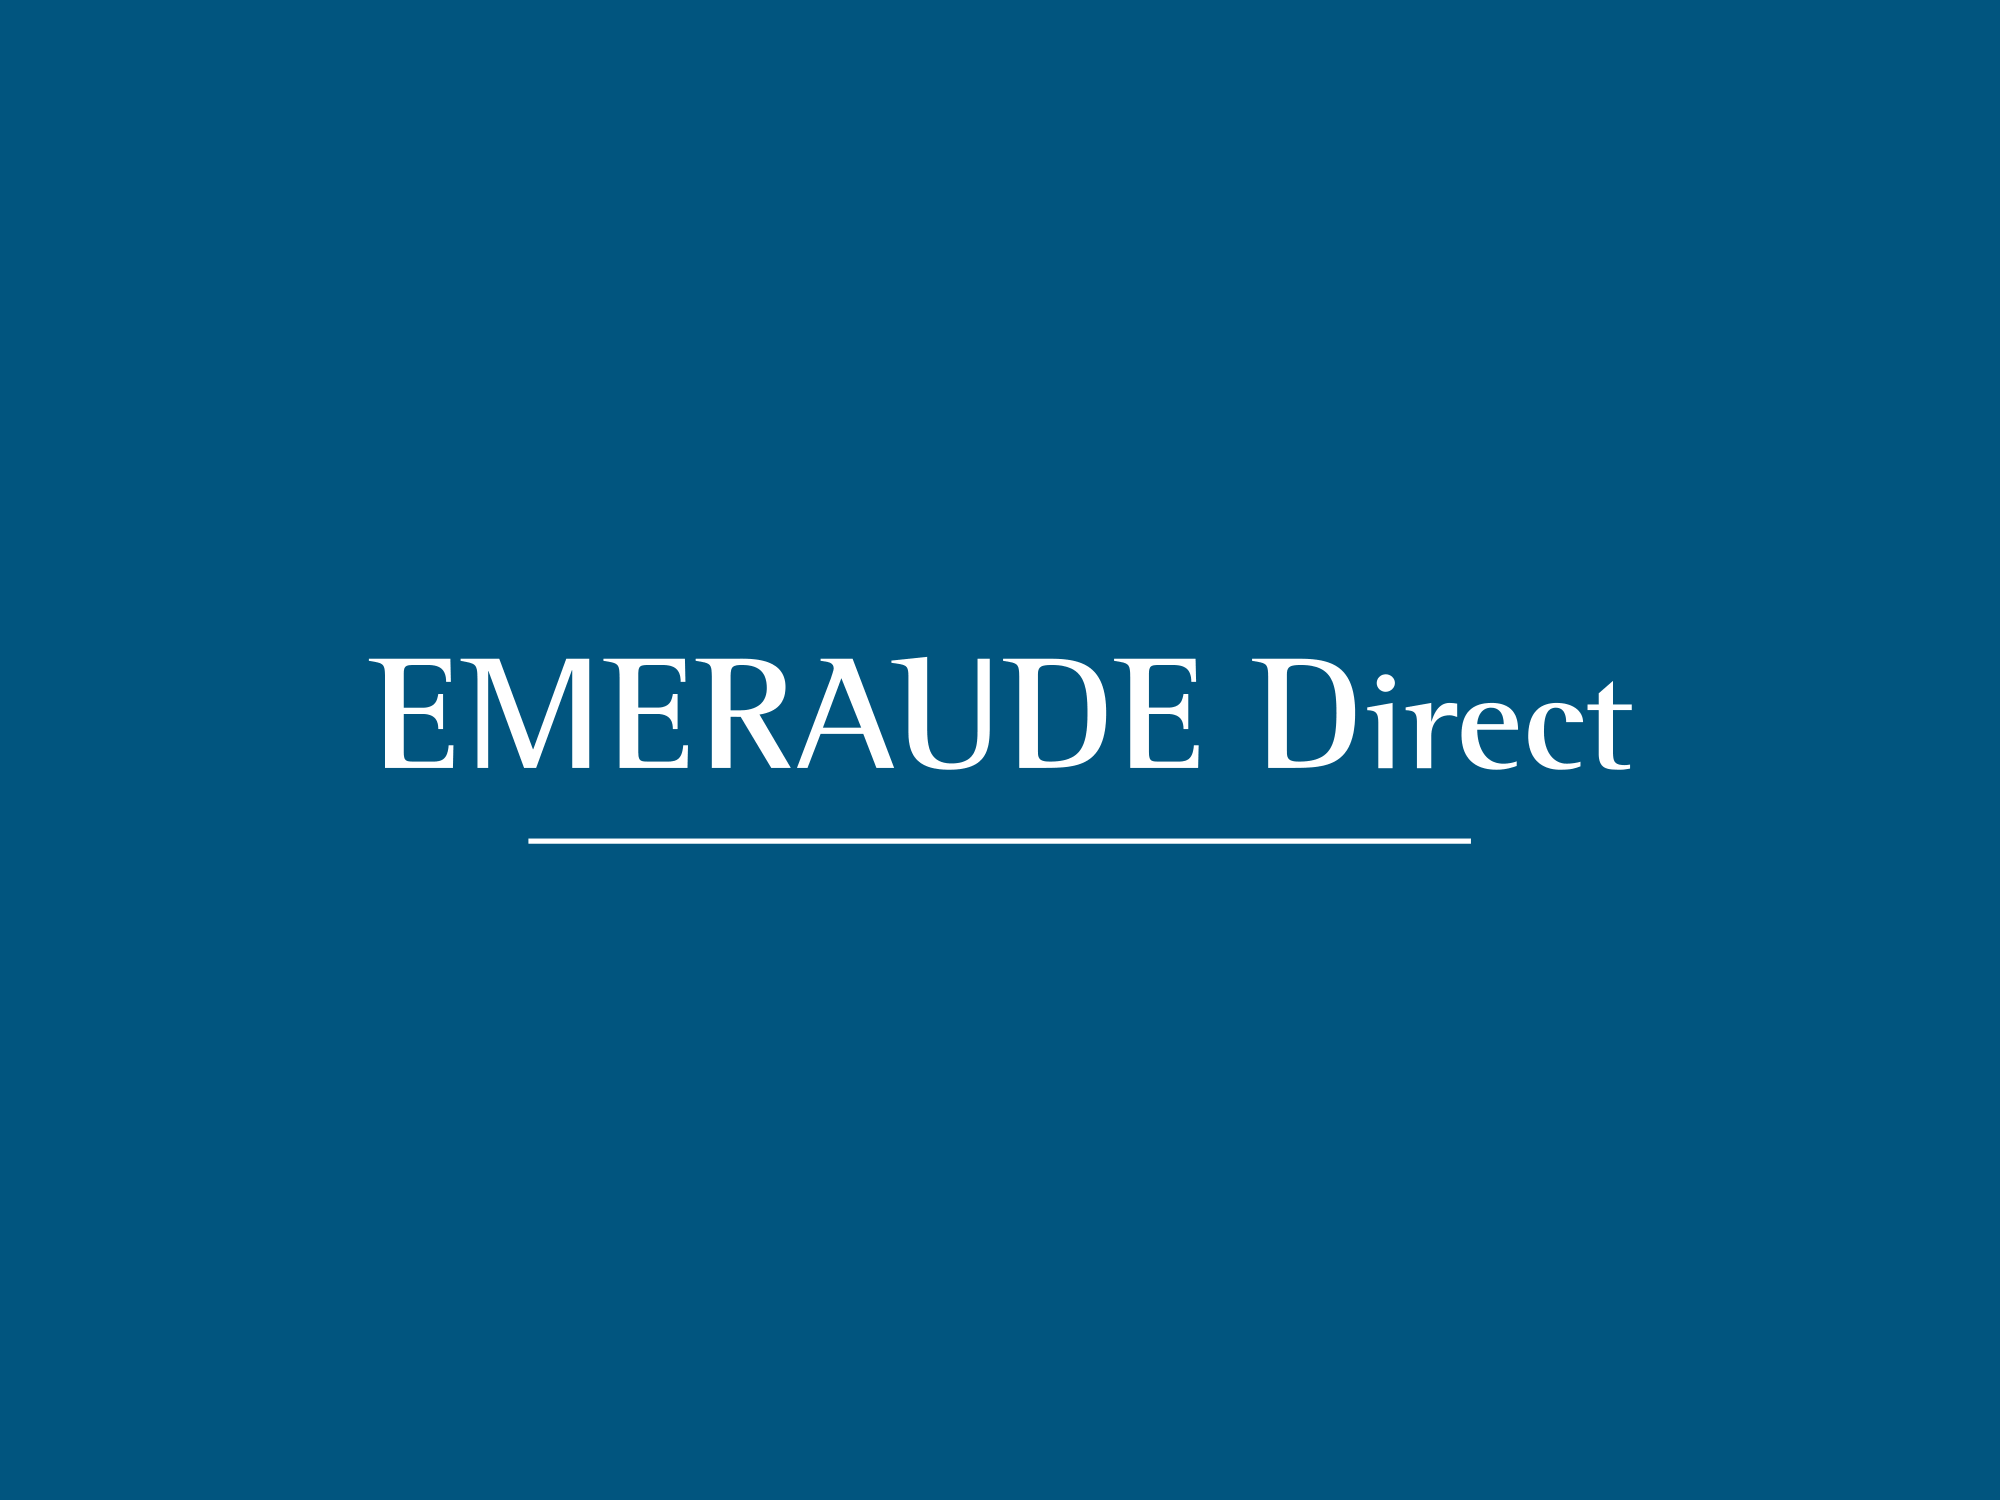 Emeraude Direct